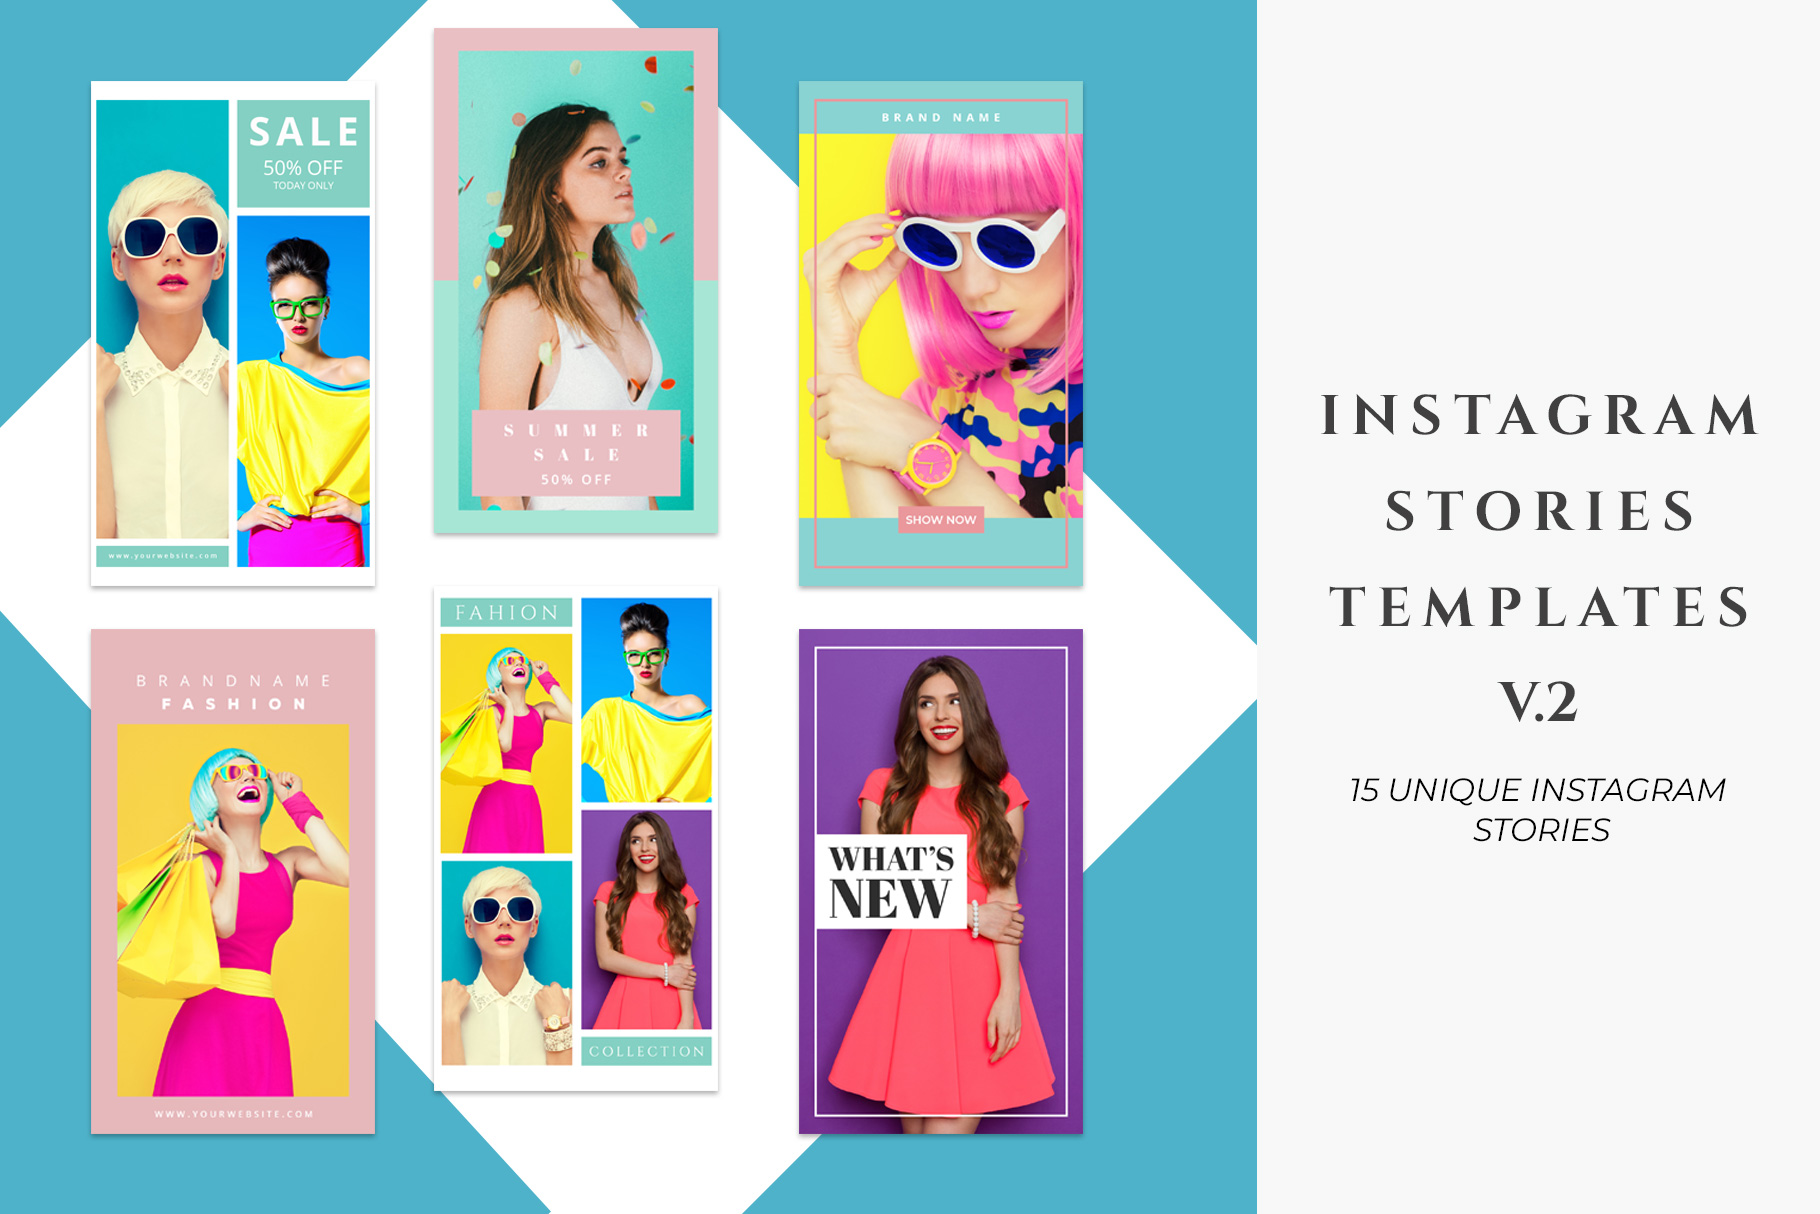 Instagram Stories Templates Pack V.2 example image 1